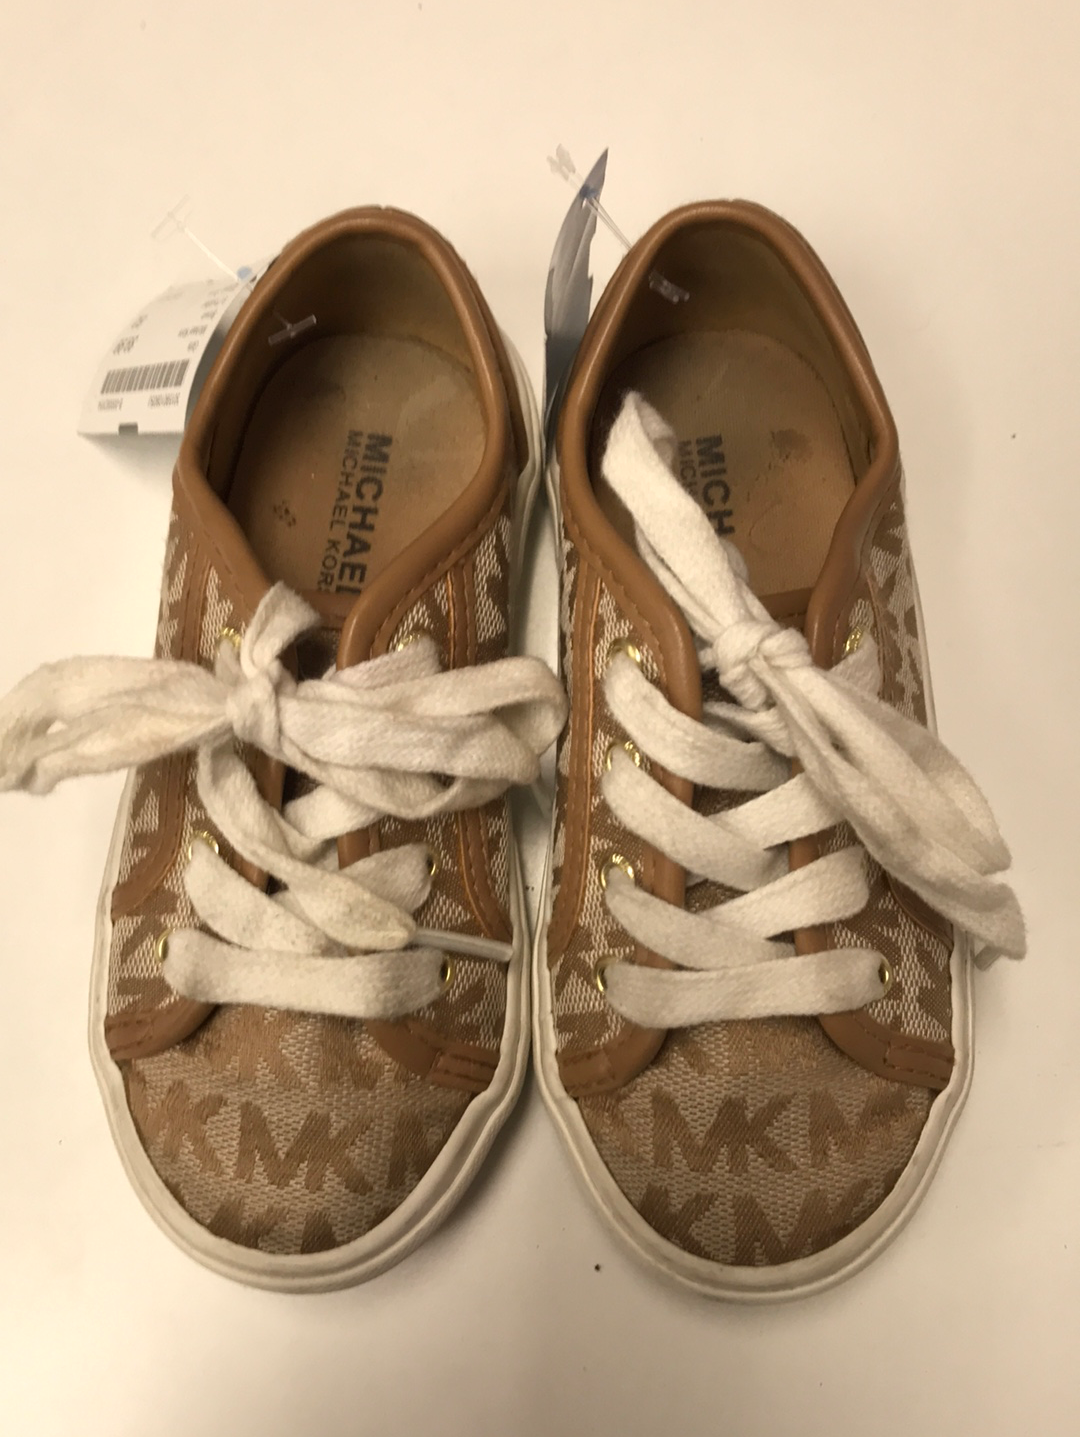 Girls Sneaker Shoes Michael Kors 9